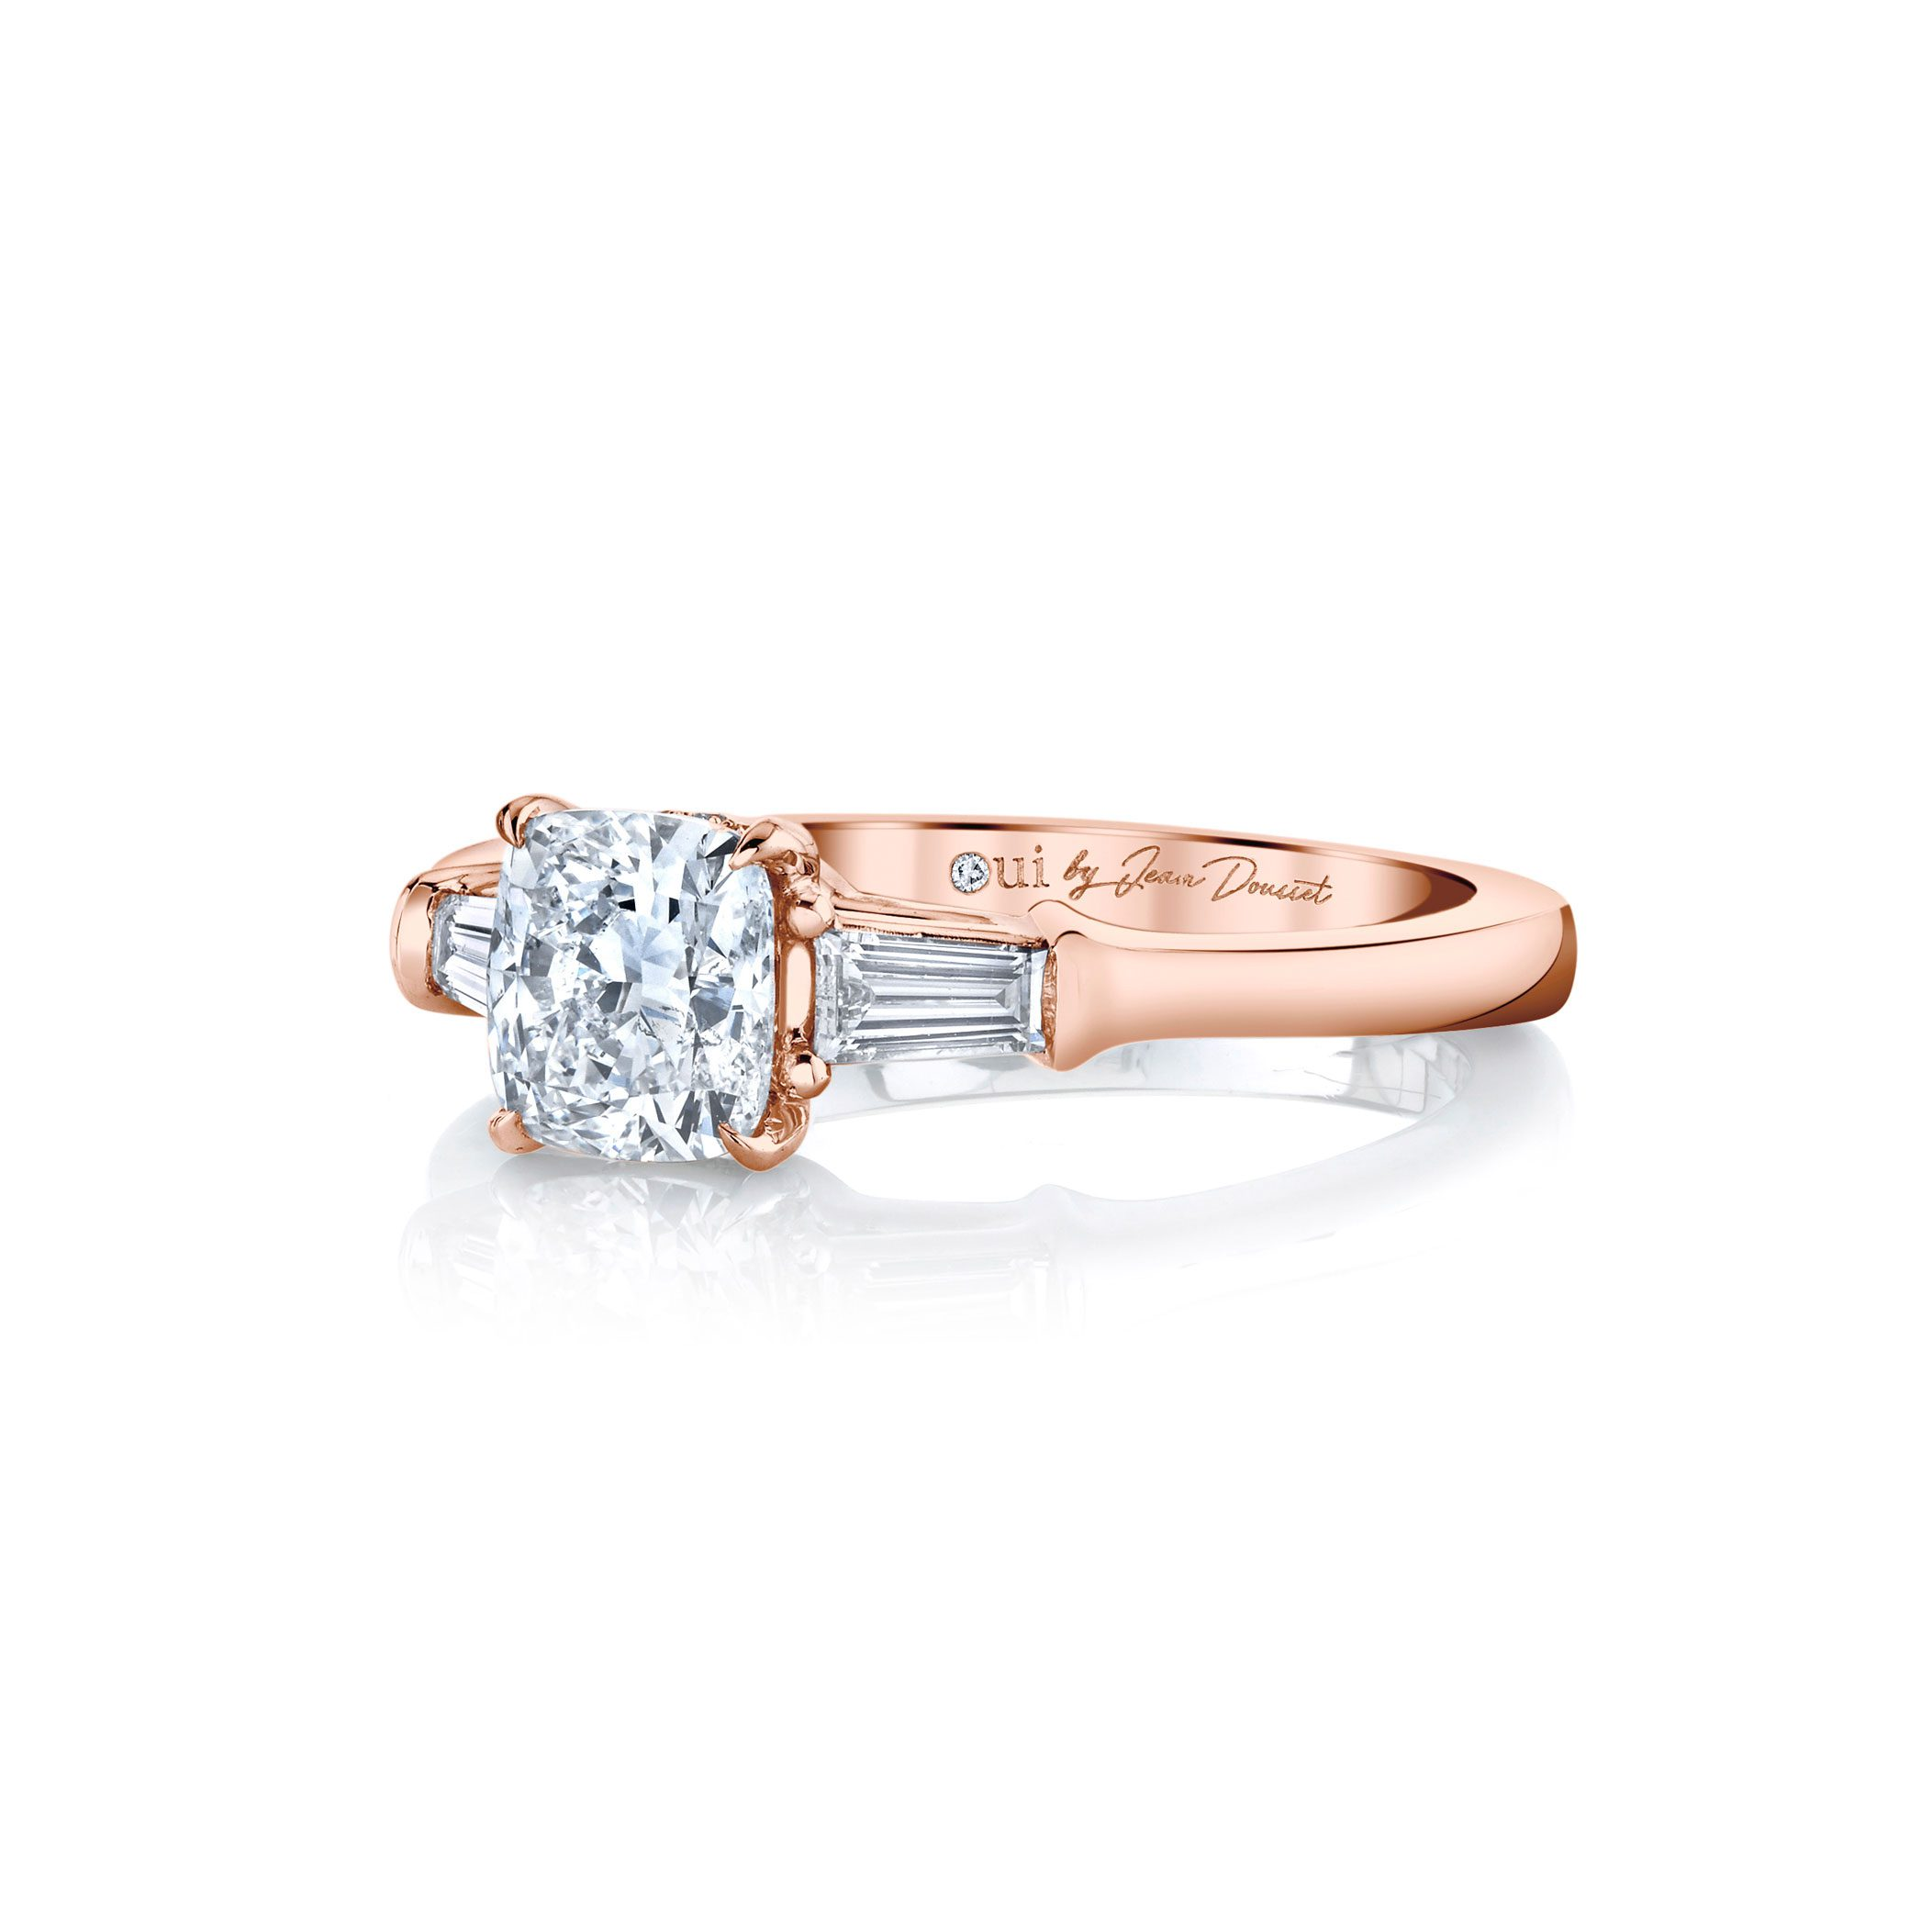 Claire Cushion Three Stone Engagement Ring with tapered baguette diamond side stones in 18k Rose Gold Side View by Oui by Jean Dousset